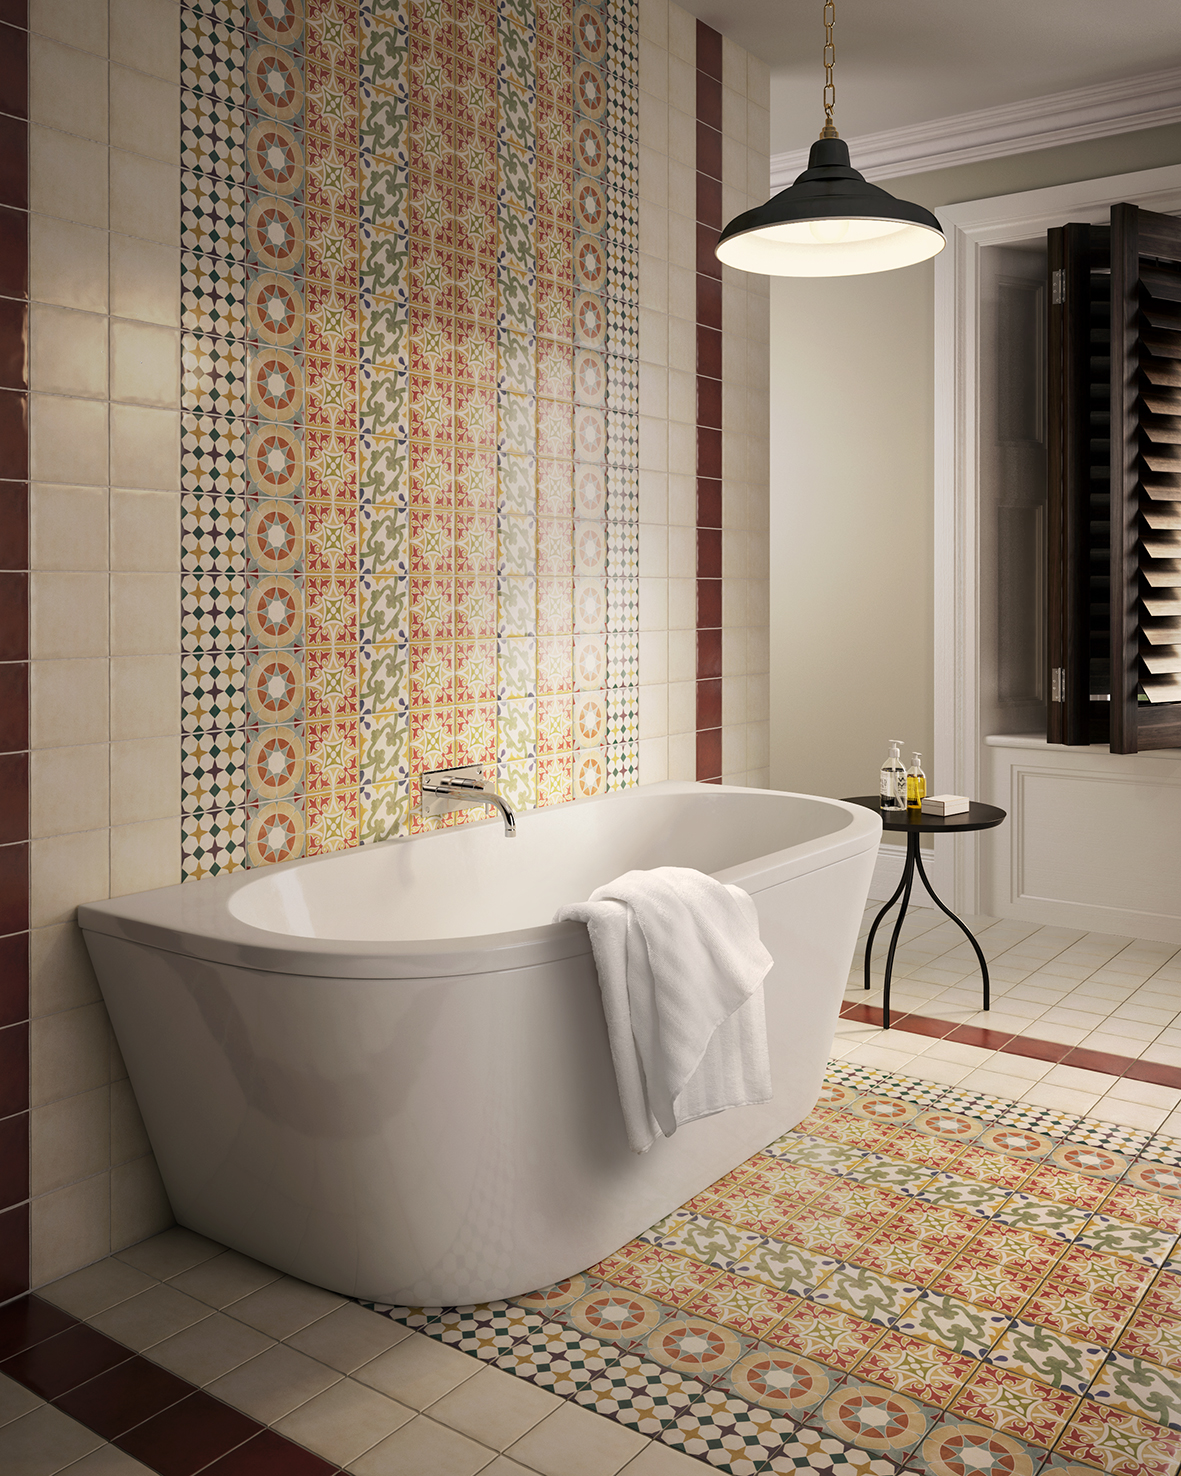 Moroccan Bathroom Tiles Uk patchwork pattern with parian | british ceramic tile